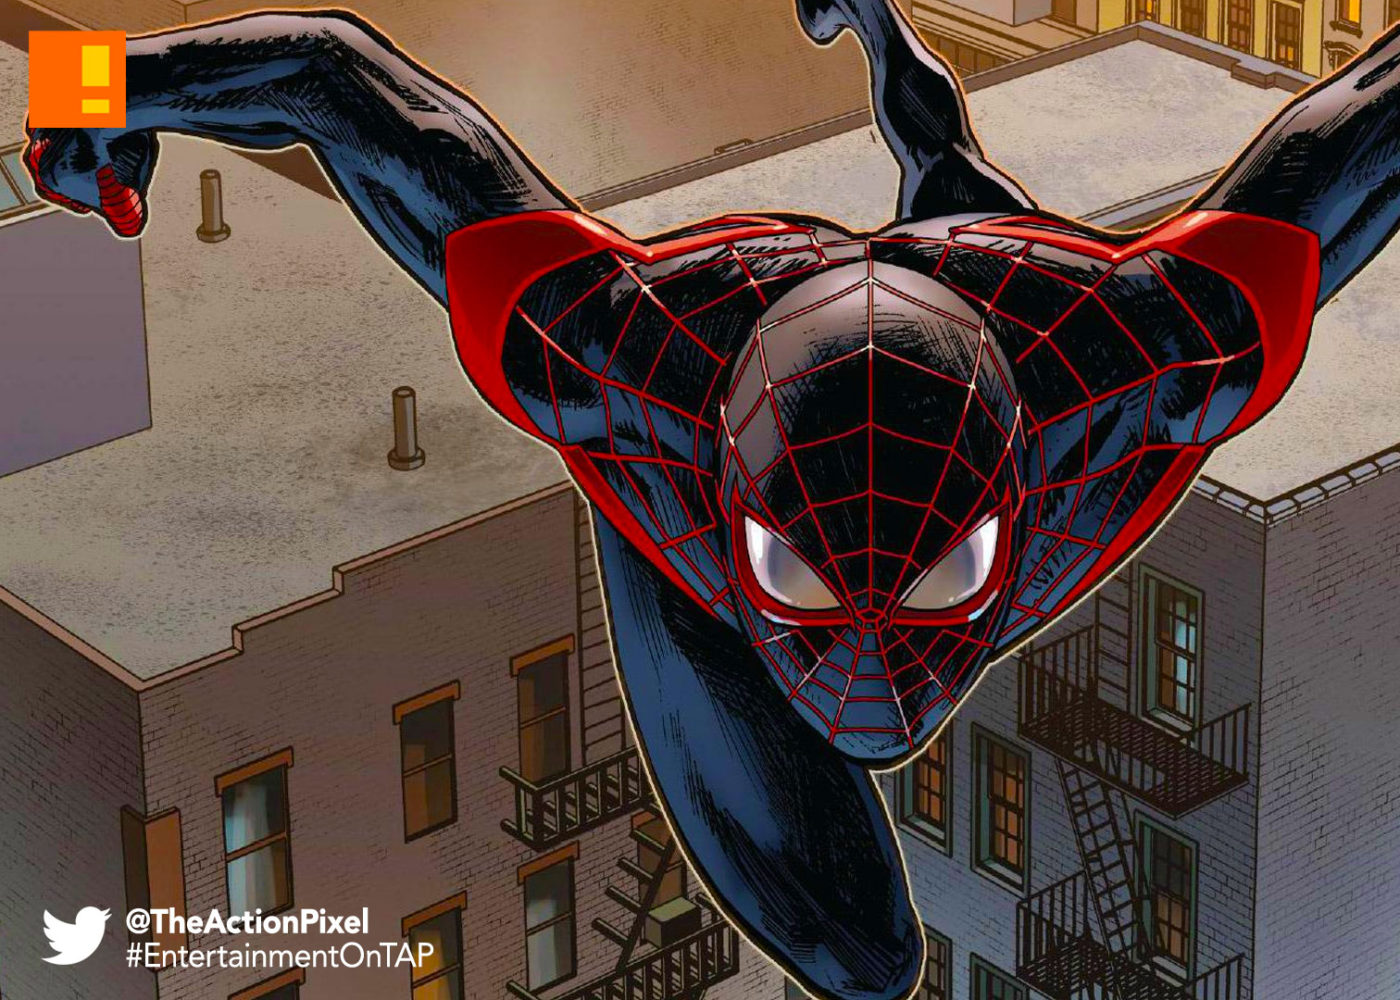 miles morales, spiderman, spider man, spider-man, sony, marvel, marvel comics, animated feature, animation, the action pixel, entertainment on tap,